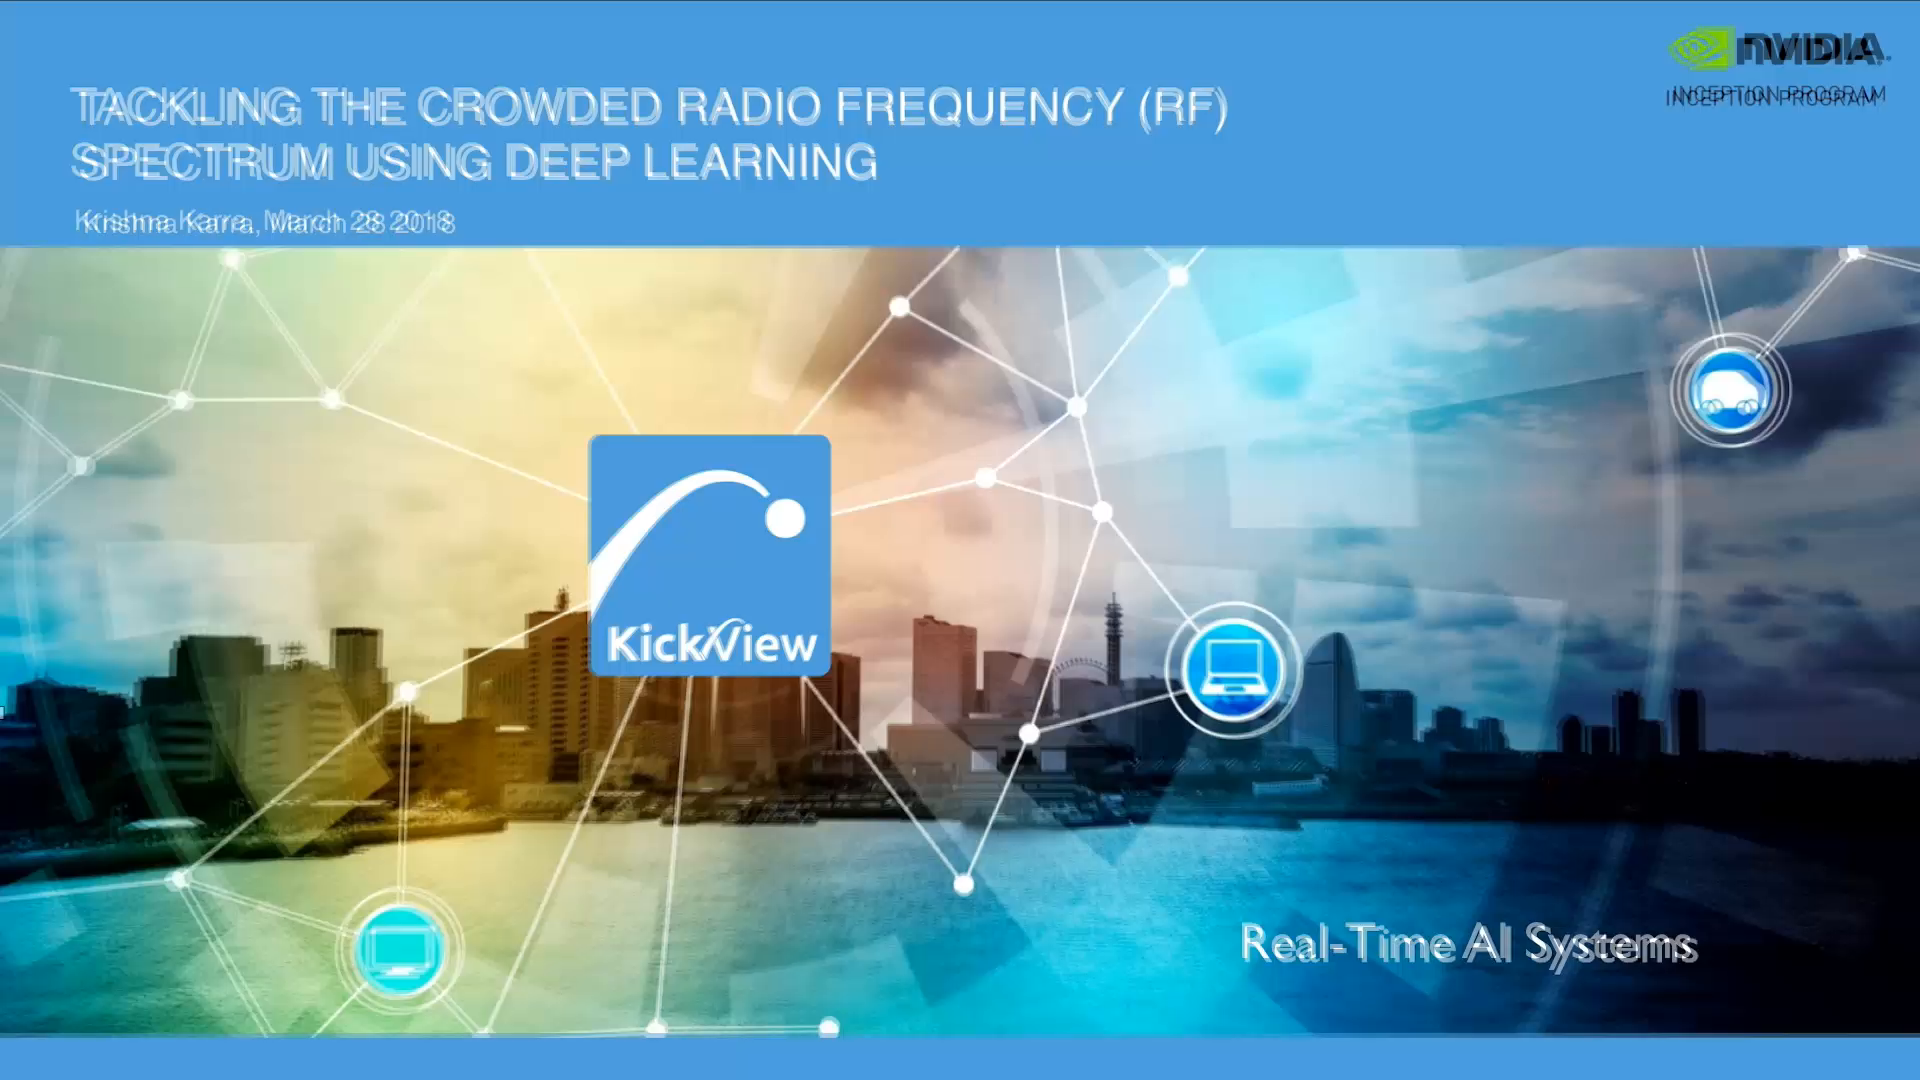 Tackling the Crowded Radio Frequency Spectrum Using Deep Learning - 25 Minutes